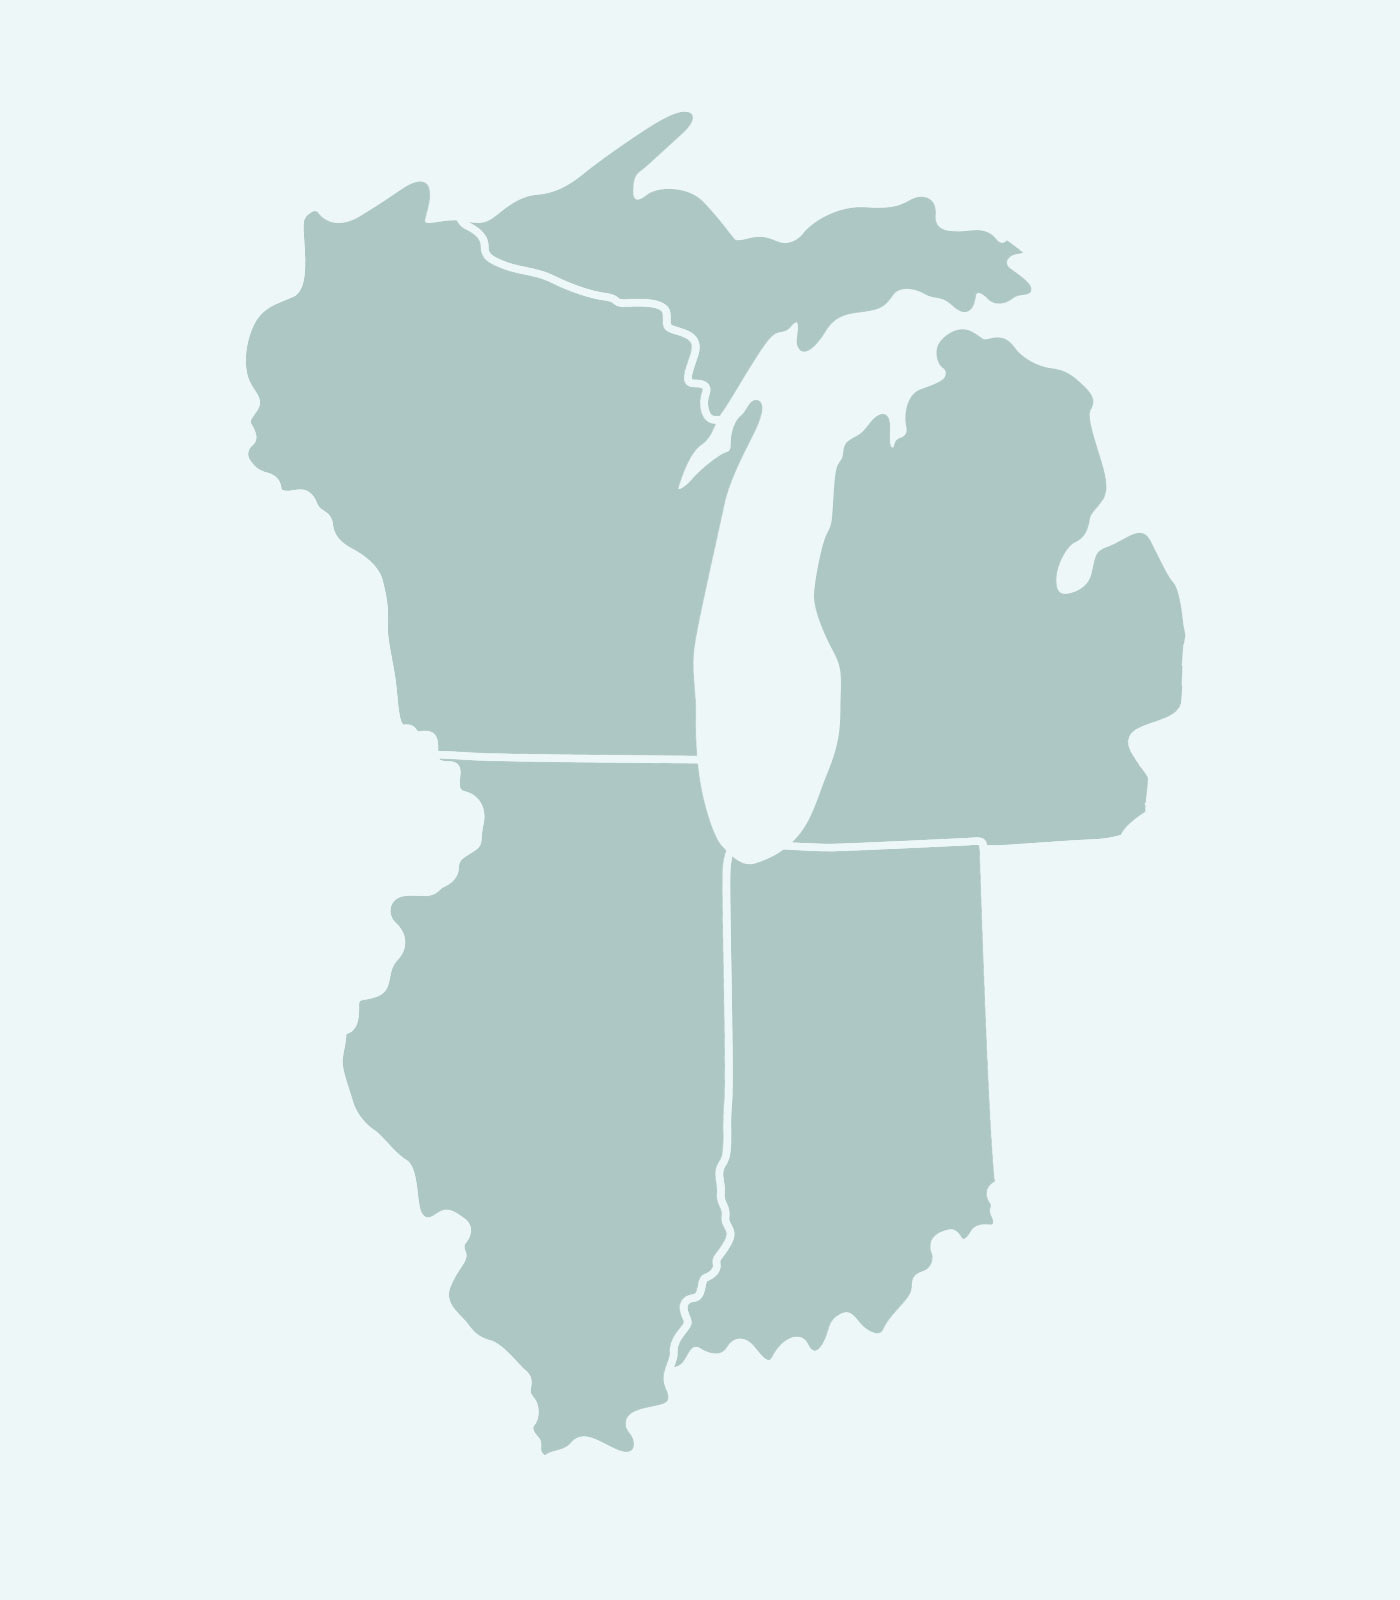 Sales Rep's Map of Illinois, Wisconsin, Indiana, Michigan for Women's Clothing Line Keren Hart